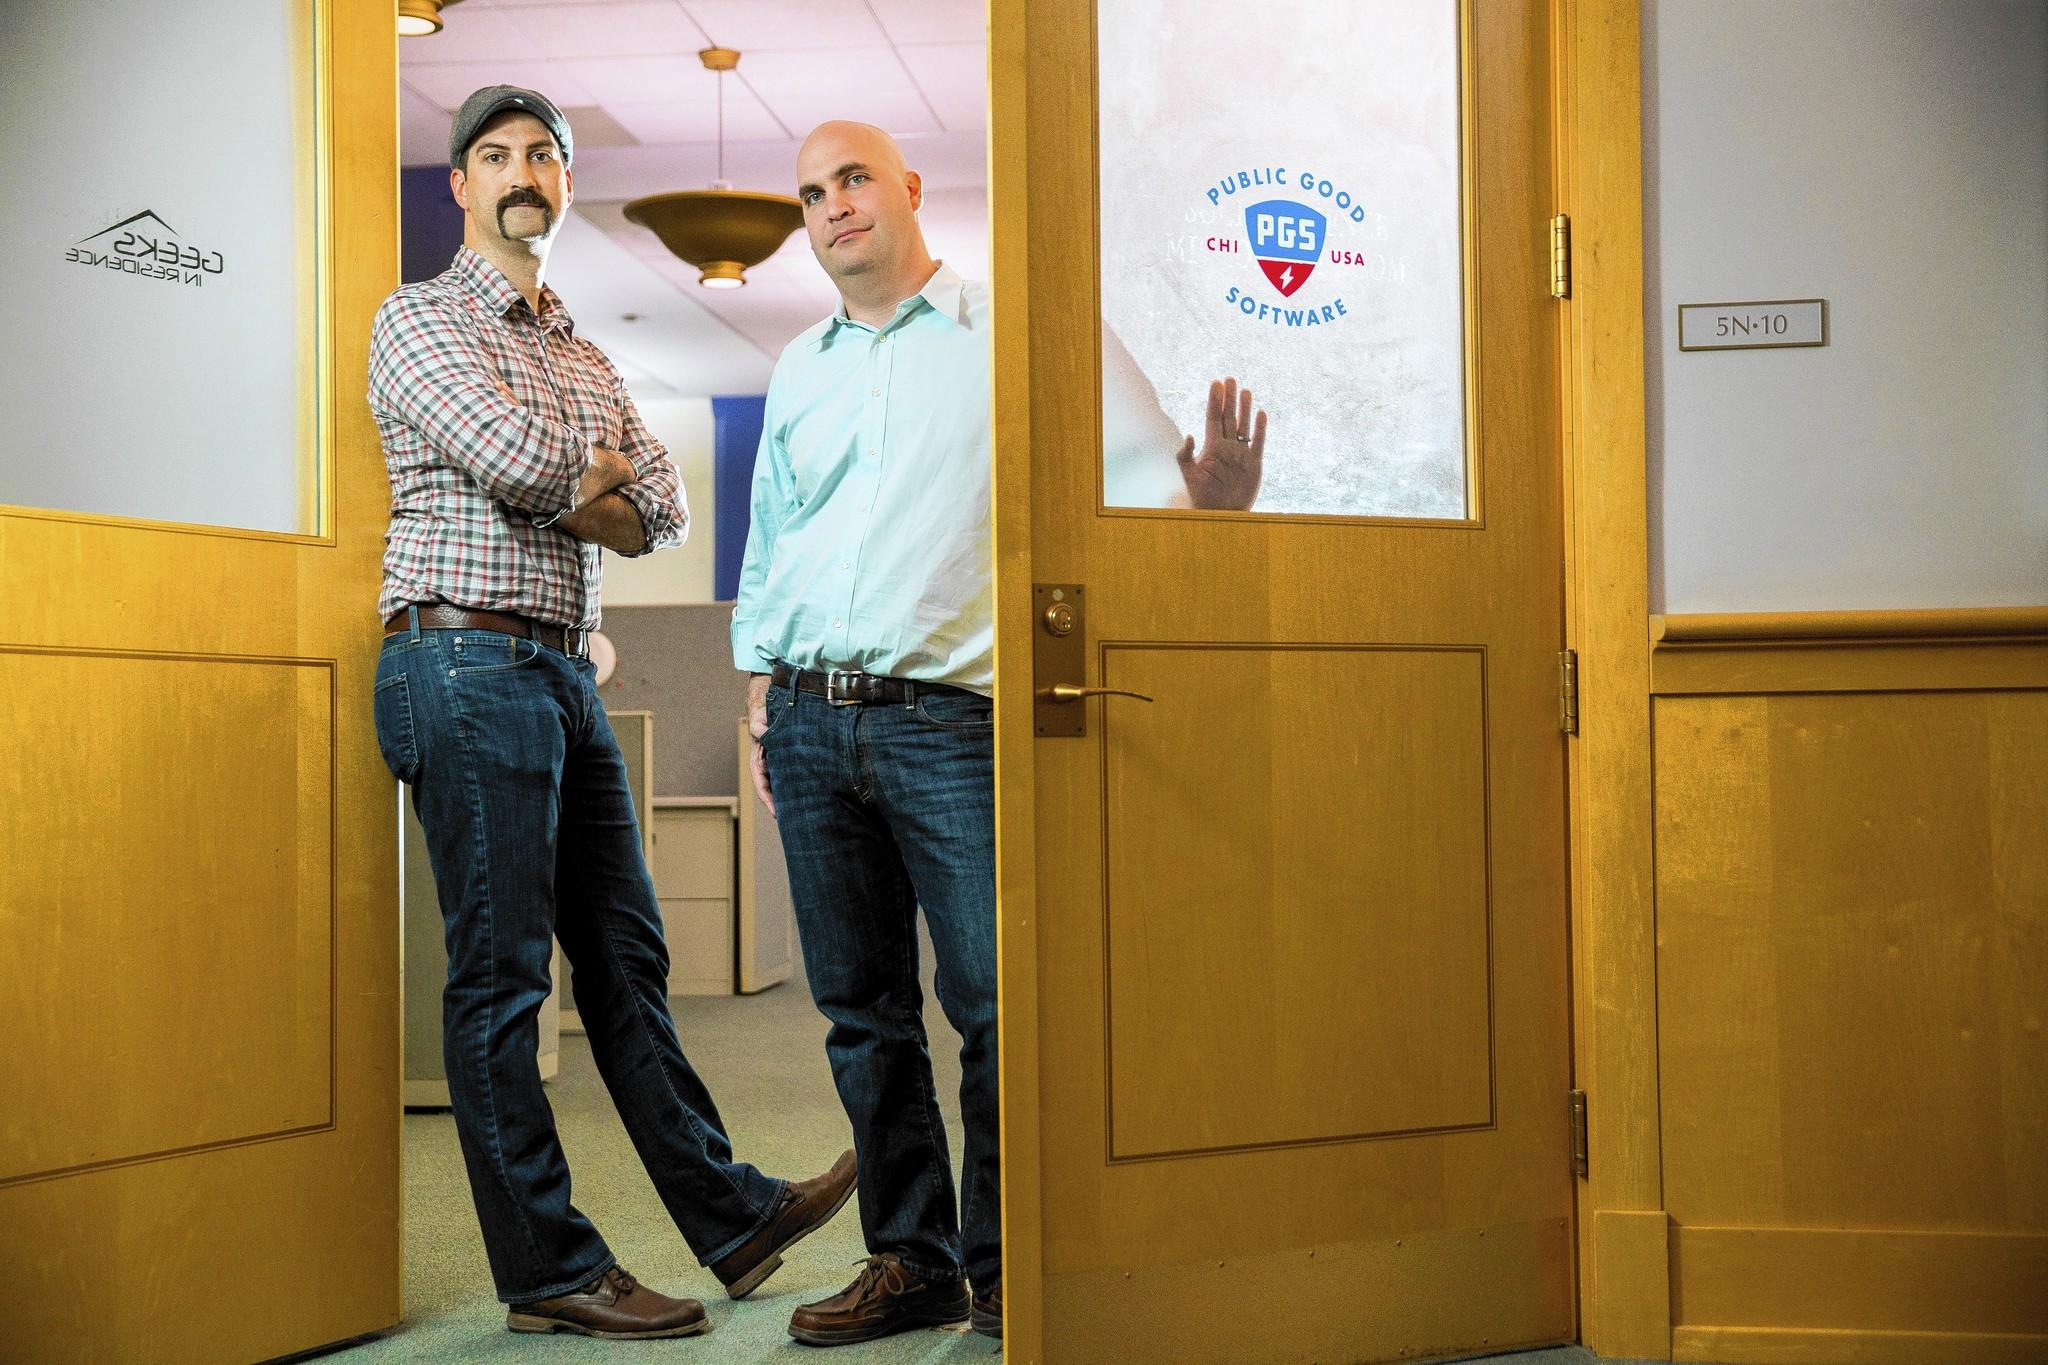 Jason Kunesh, left, and Dan Ratner are the co-founders of Public Good Software. They have offices in Chicago's Harold Washington Library.